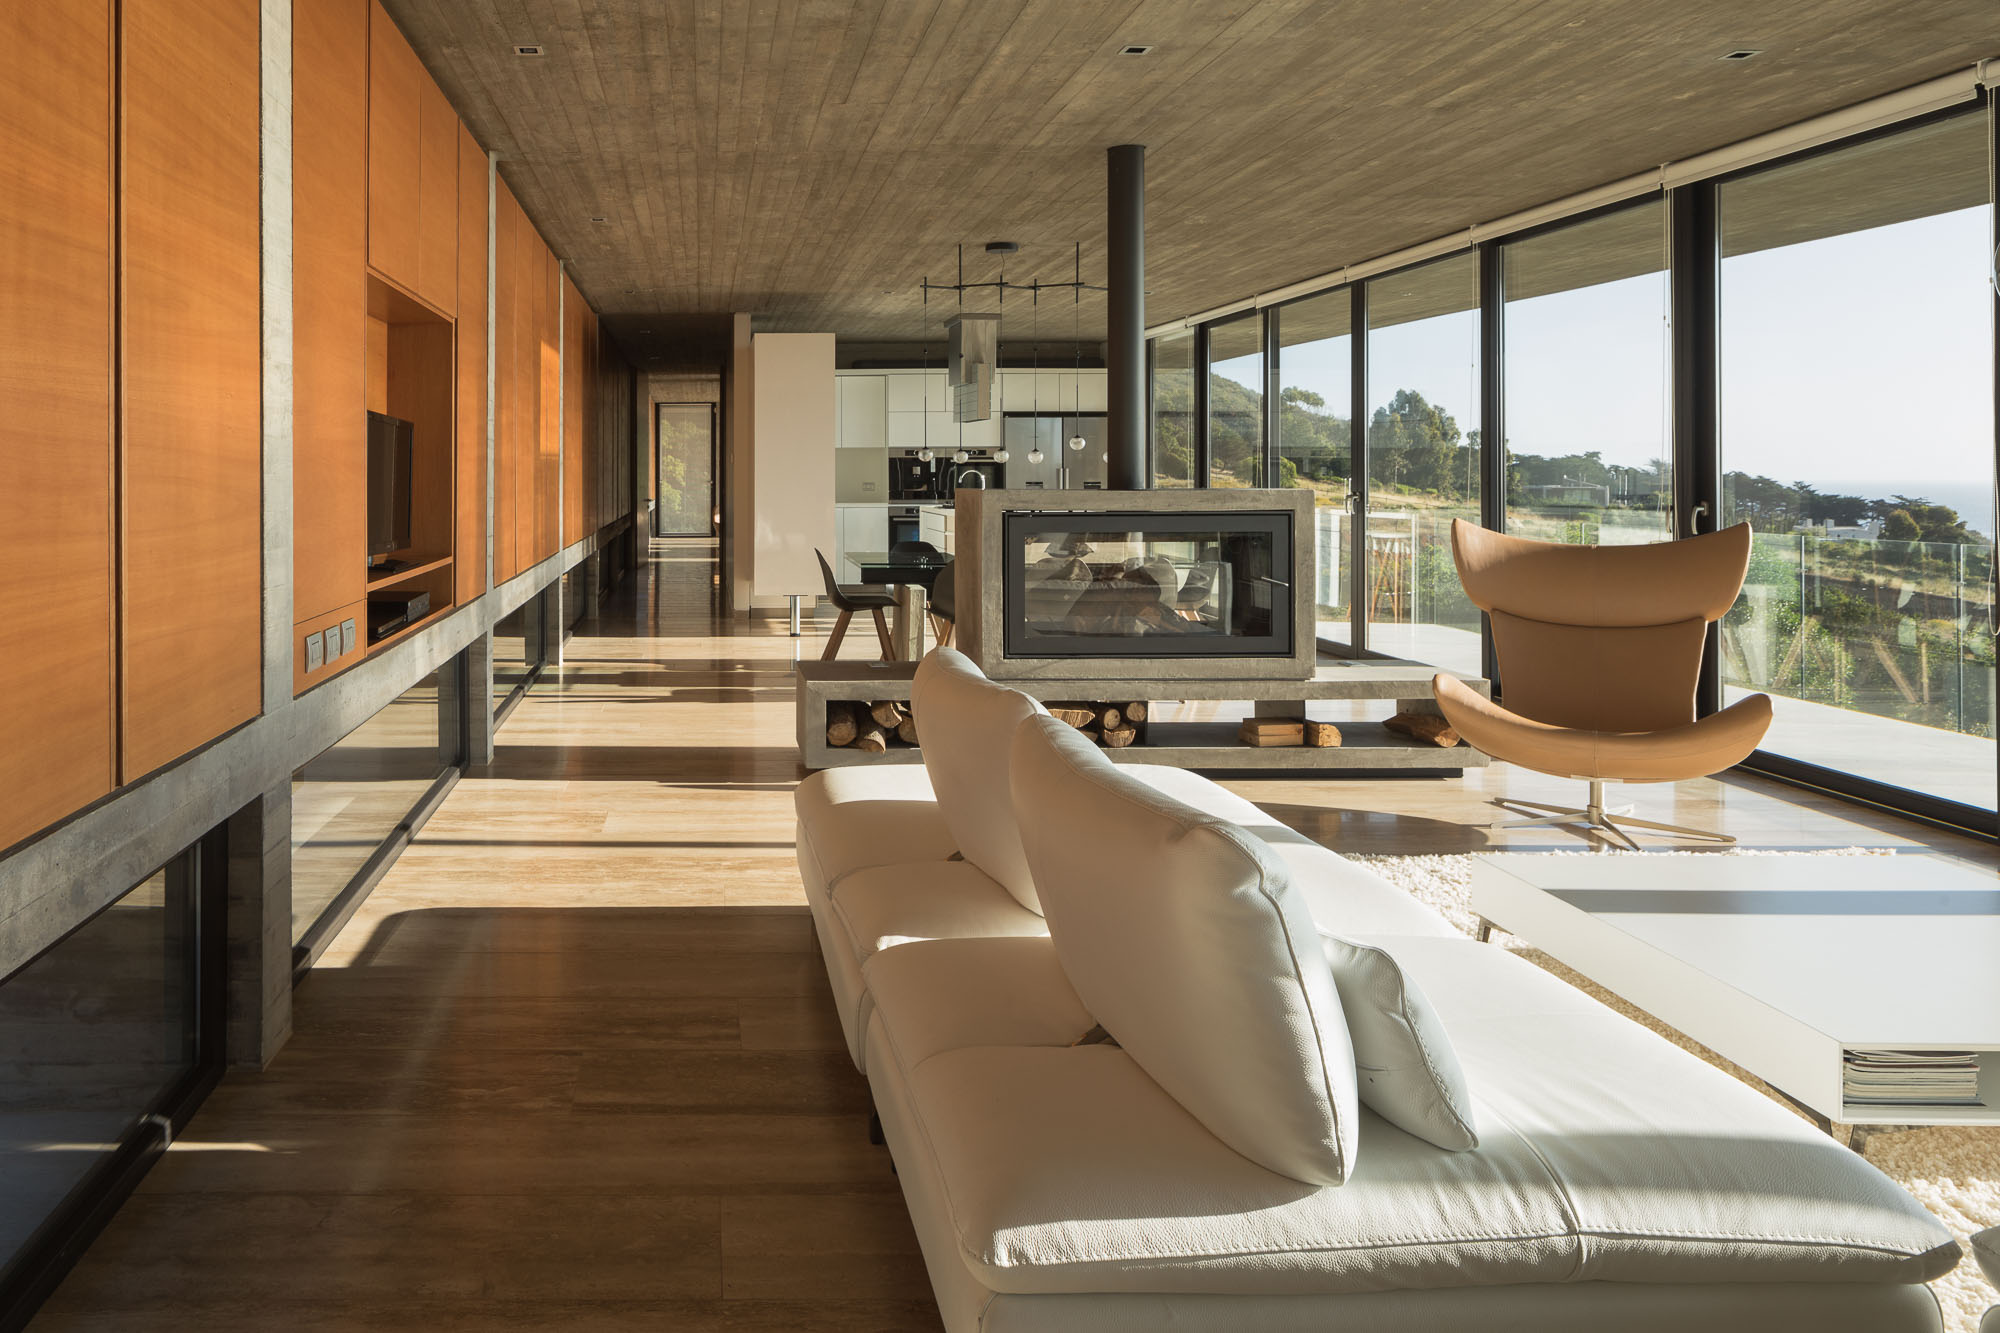 Hillside modern house is all concrete, glass, and views